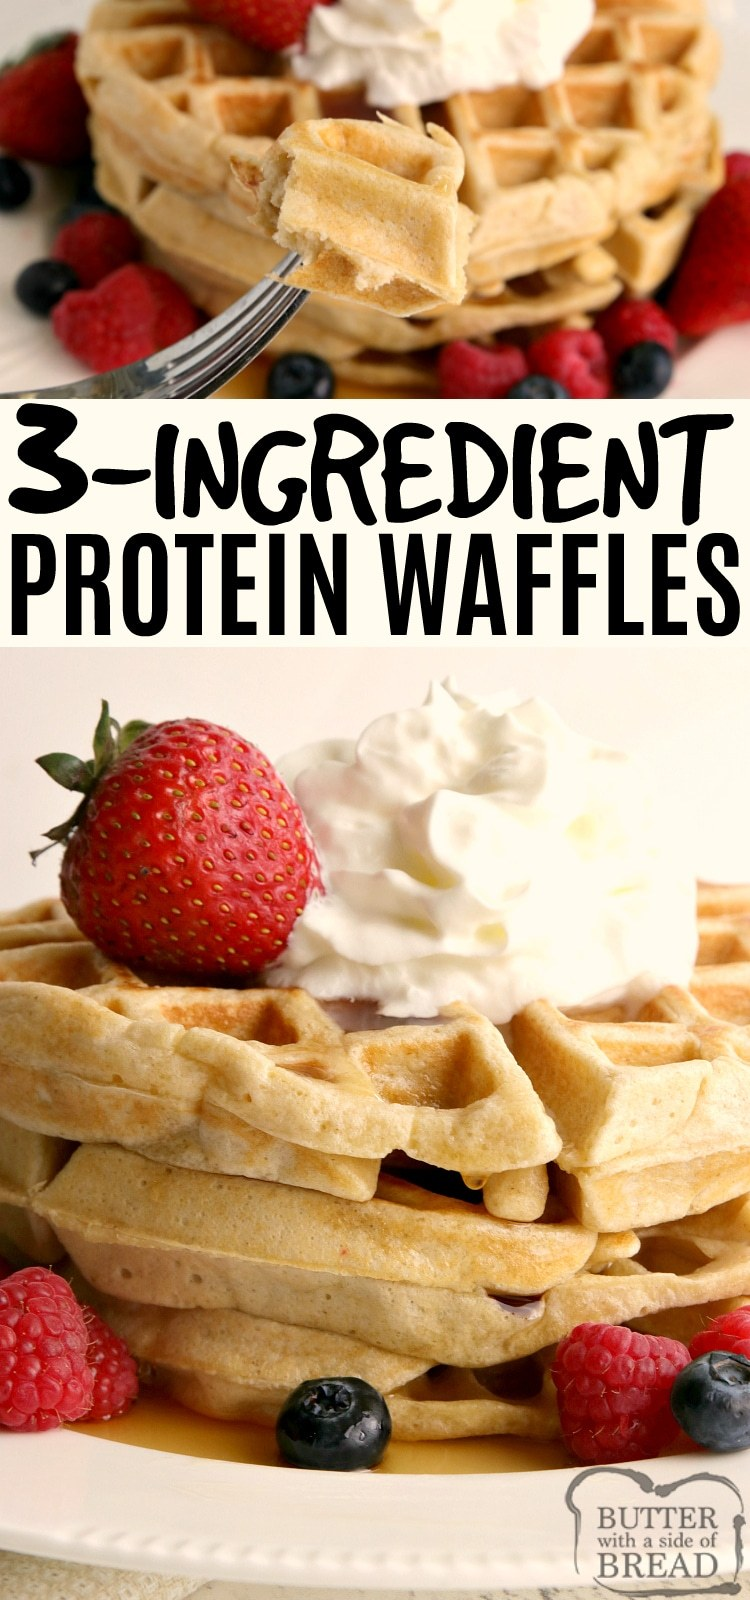 High Protein Waffle recipe made with eggs, oats and cottage cheese. Delicious protein waffles with only 3 simple ingredients! Easy breakfast recipe that is high in protein and gluten-free too, no protein powder needed!